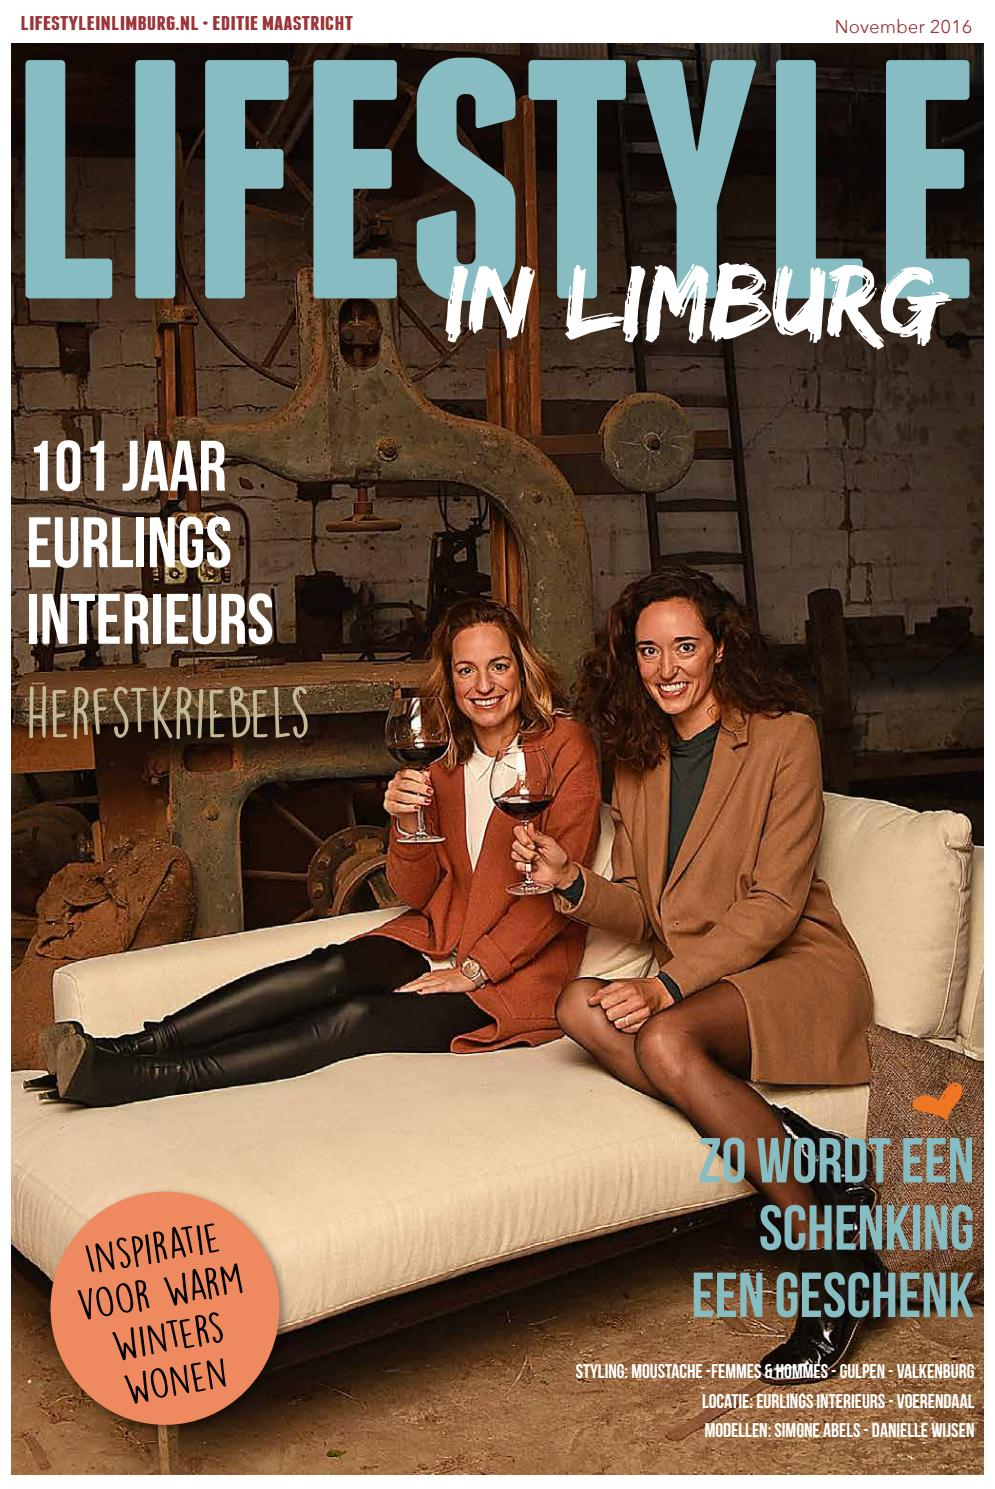 Lifestyle in limburg   maastricht   november 2016 by lifestyle in ...